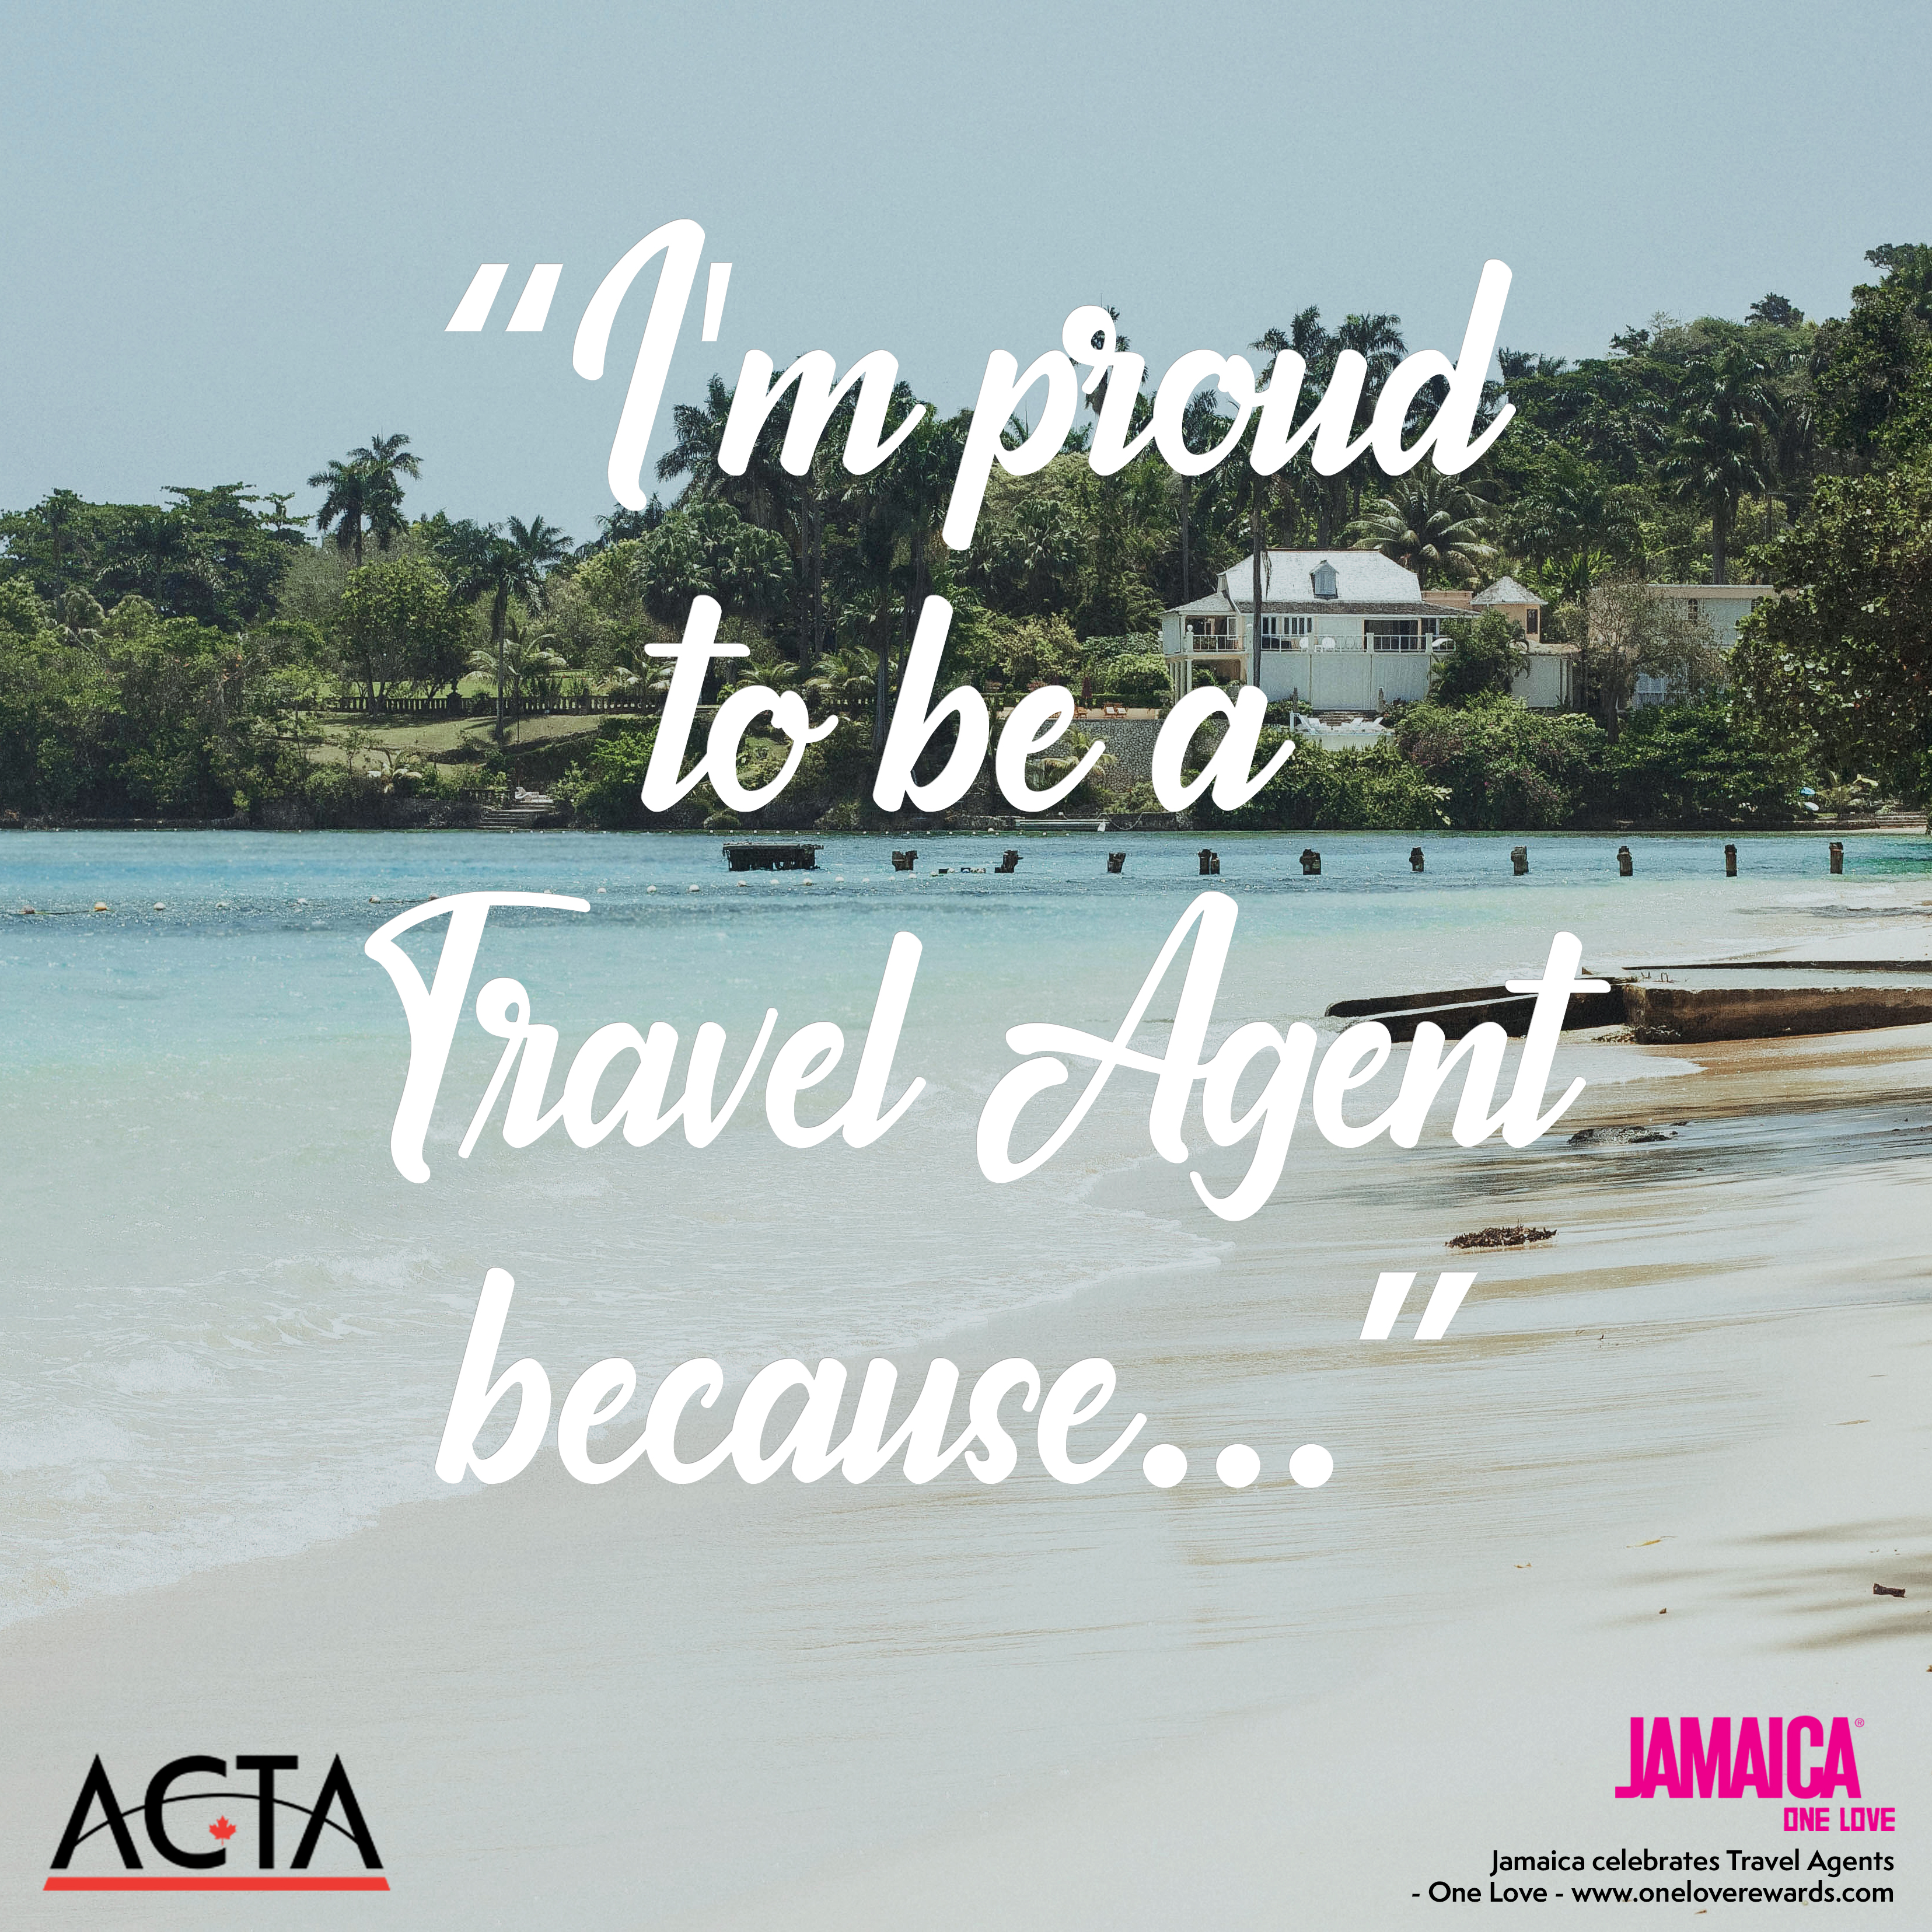 Association of Canadian Travel Agencies - Travel Agent Day Contest!